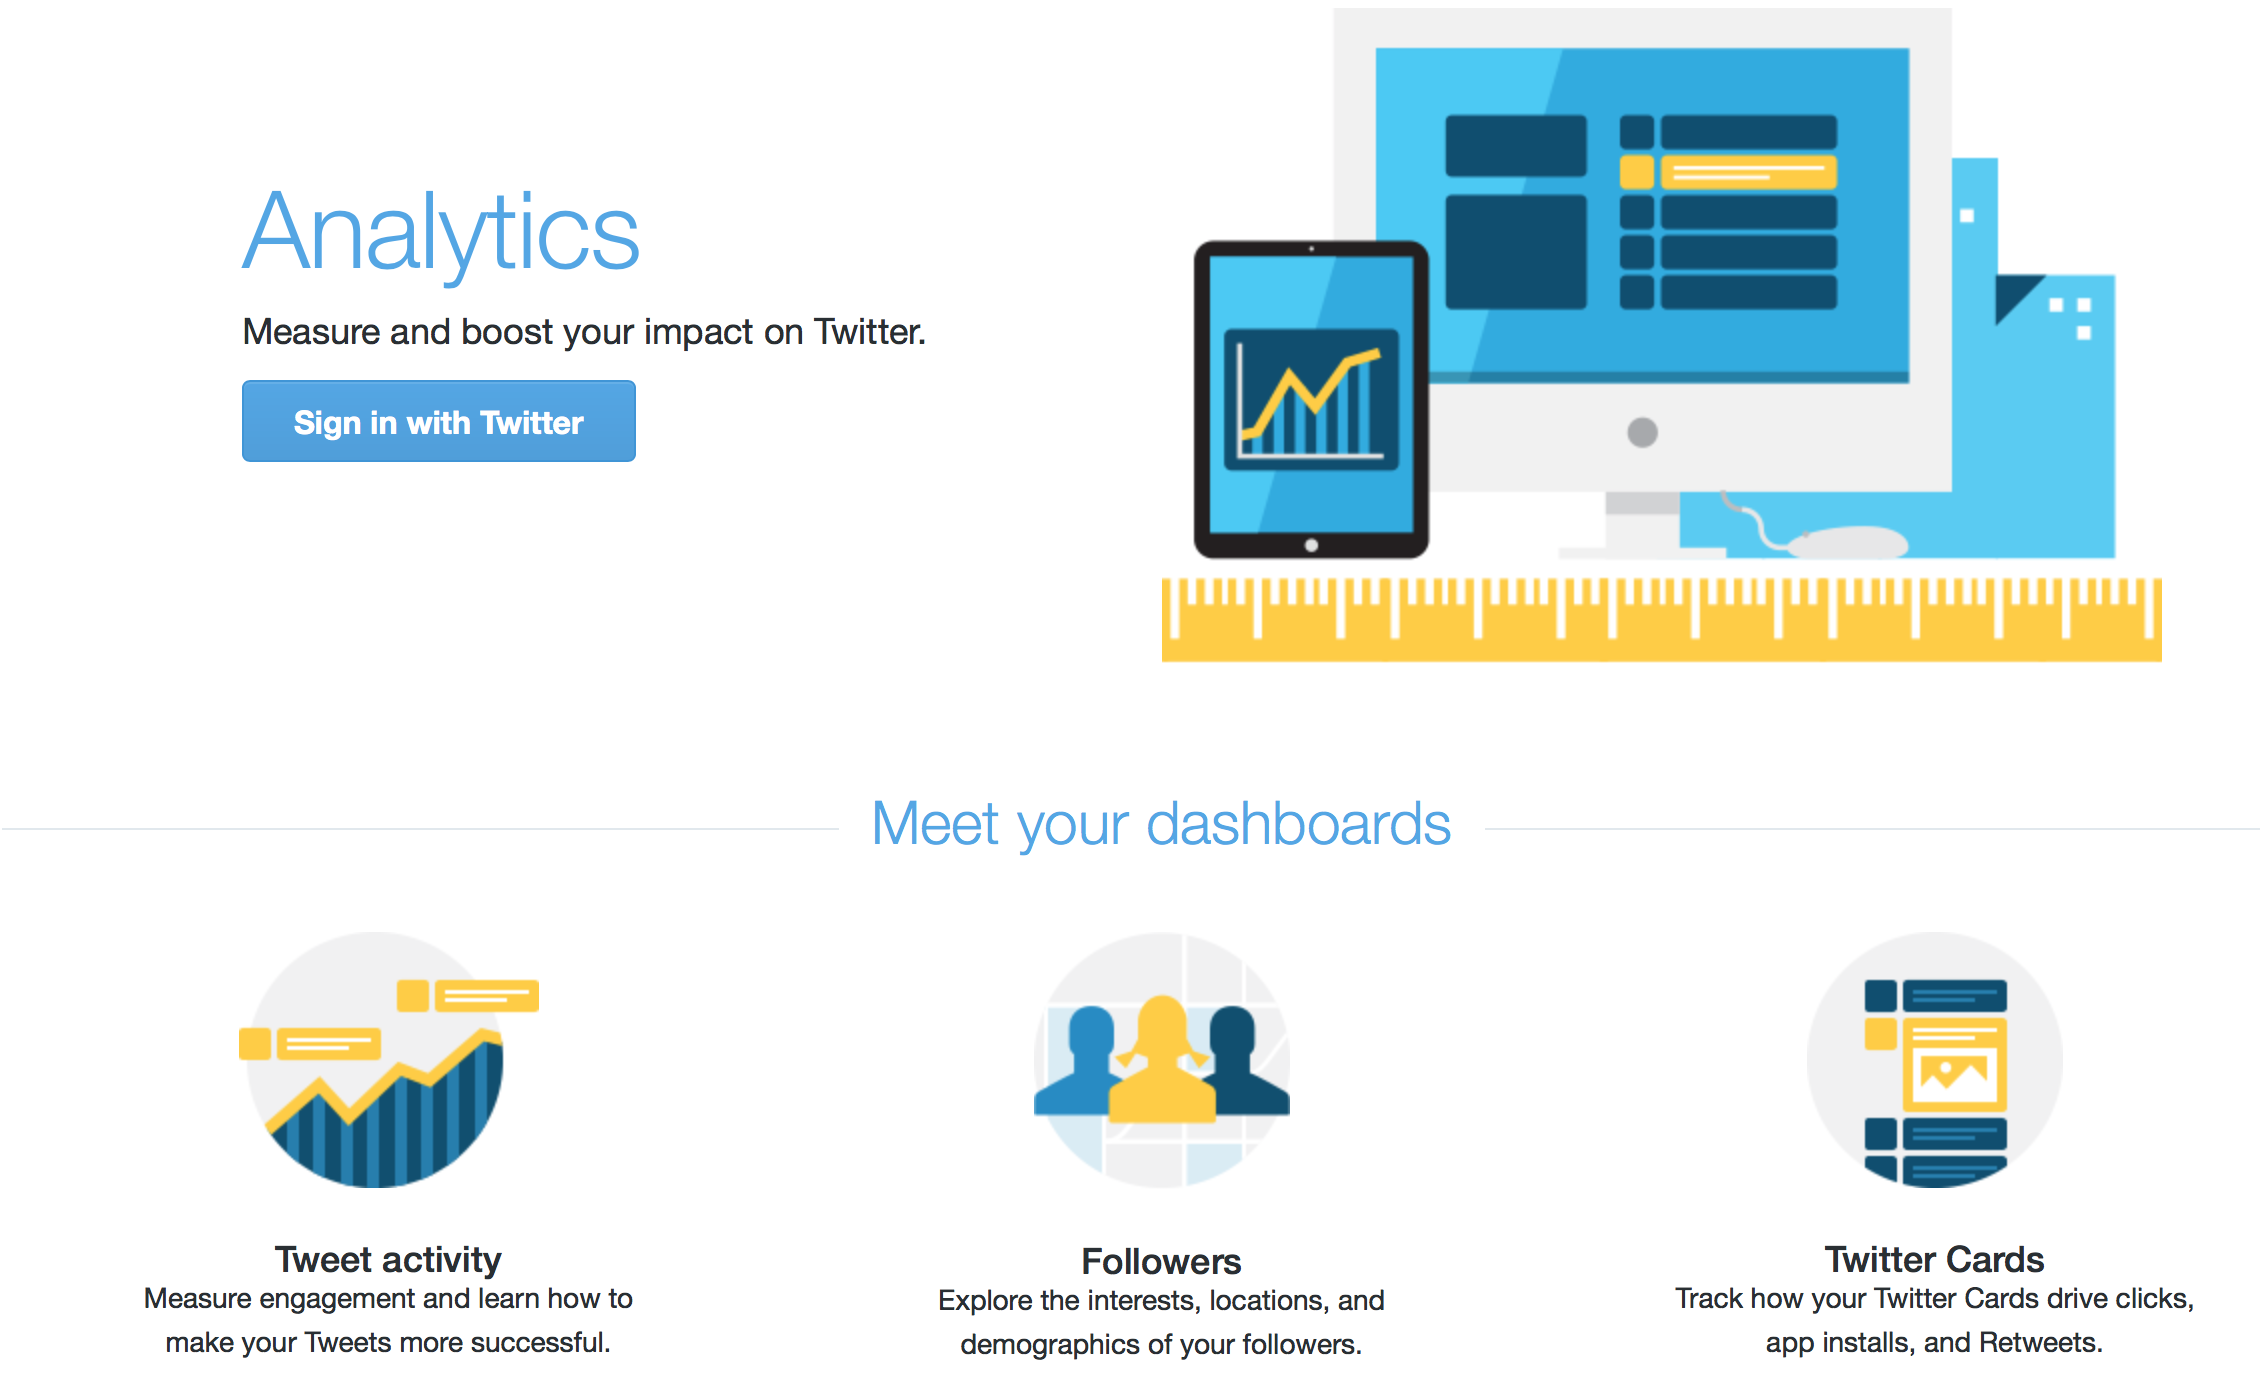 Learn more about Twitter Analytics